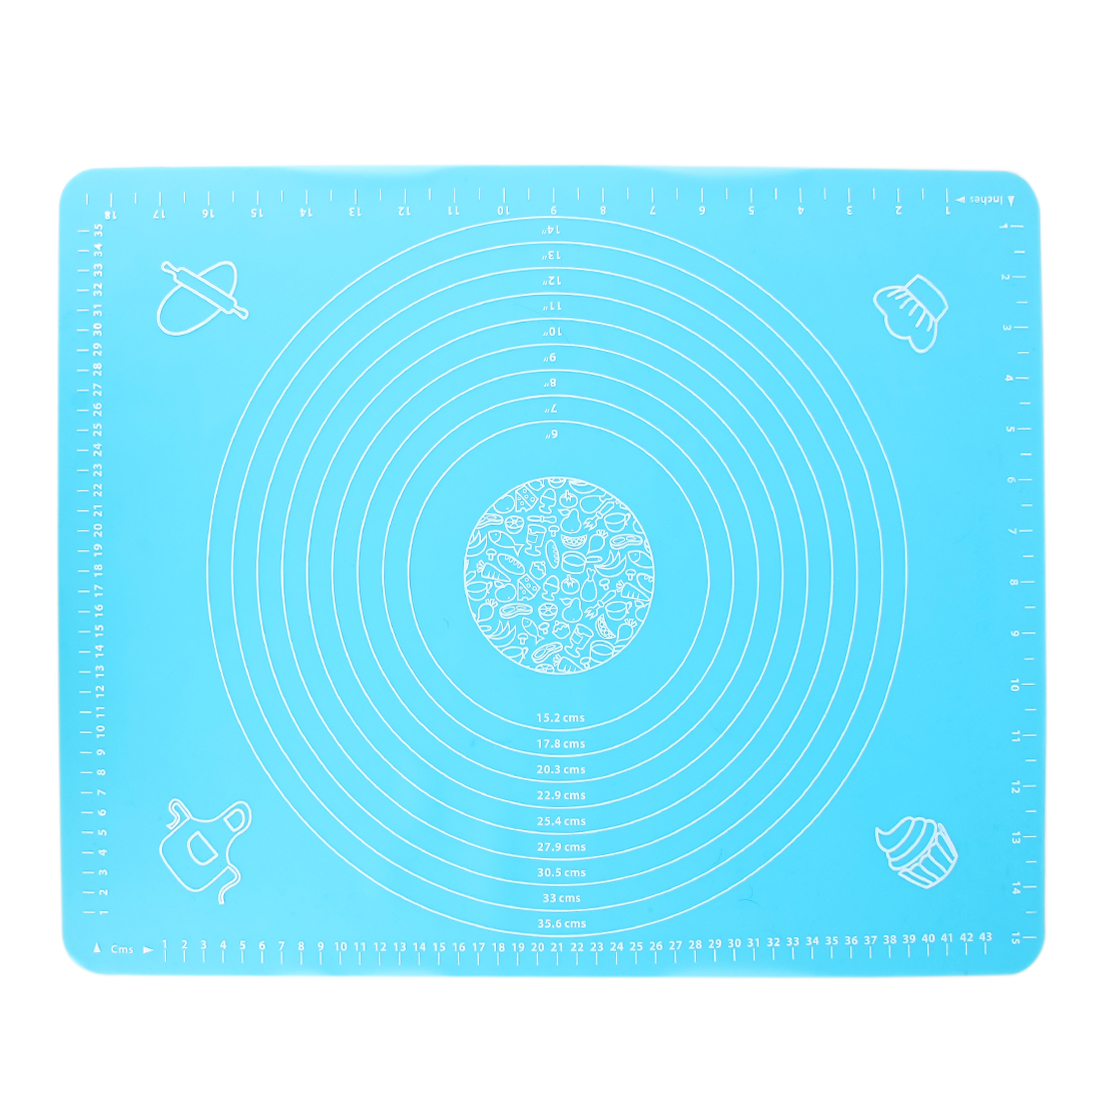 Square Silicone Anti Slip Heat Resistant Table Cup Pad Placemat Coaster Blue